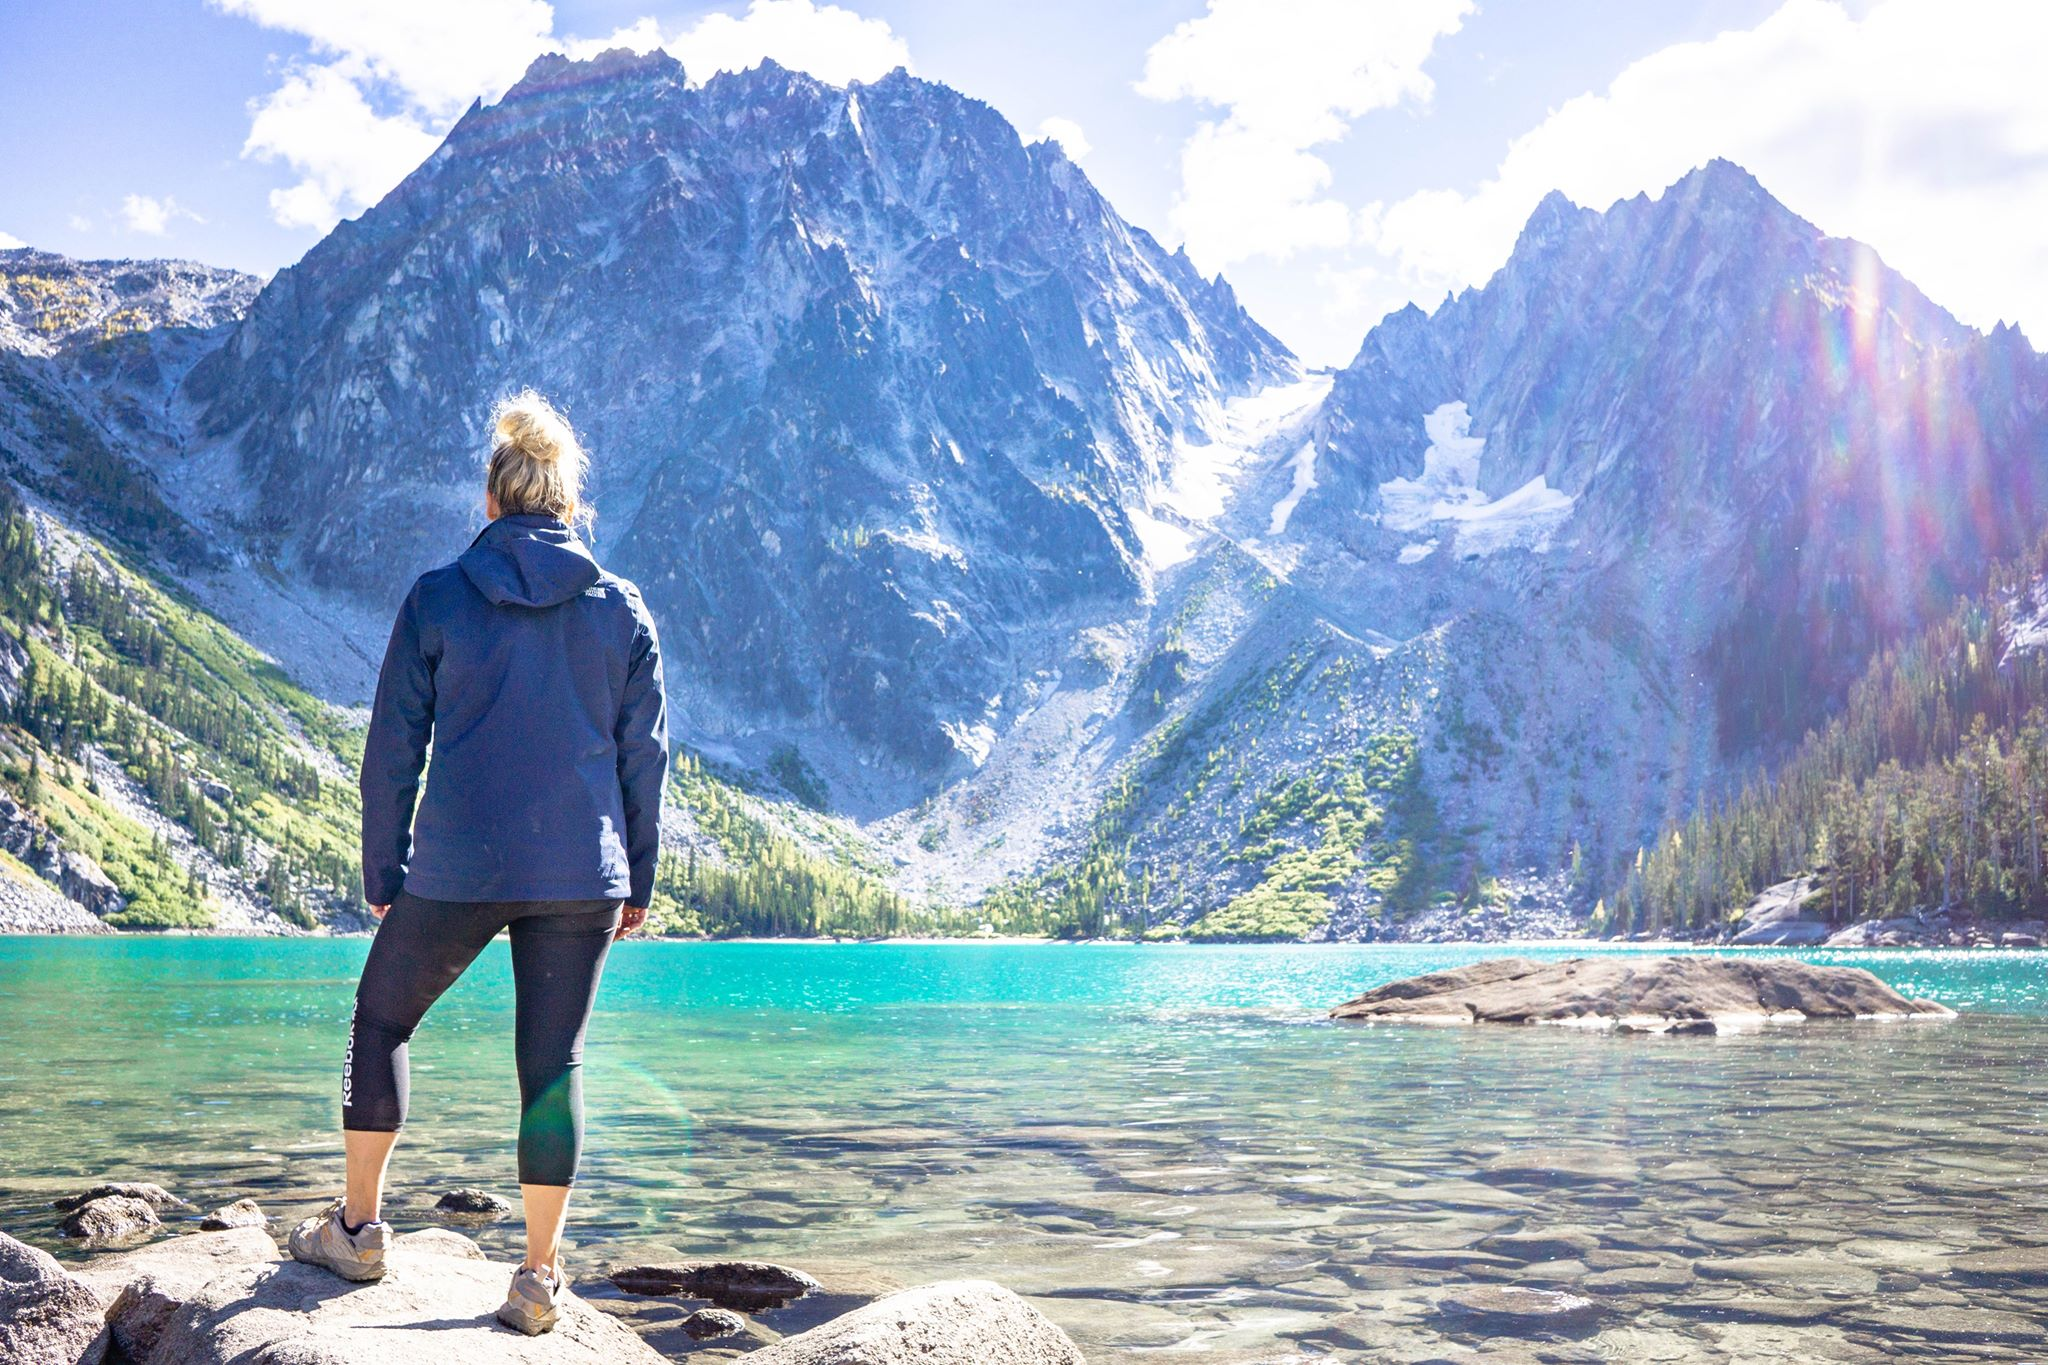 This photo is of me standing at colchuck lake in Washington. I was able to fly to Spokane from Florida with both my kids for only $500 — I used the companion certificate offered through the delta reserve card. I bought my tickets & charletta's was free. Latham was a lap infant (23 months) so he was free, but i could have gotten his ticket with miles.